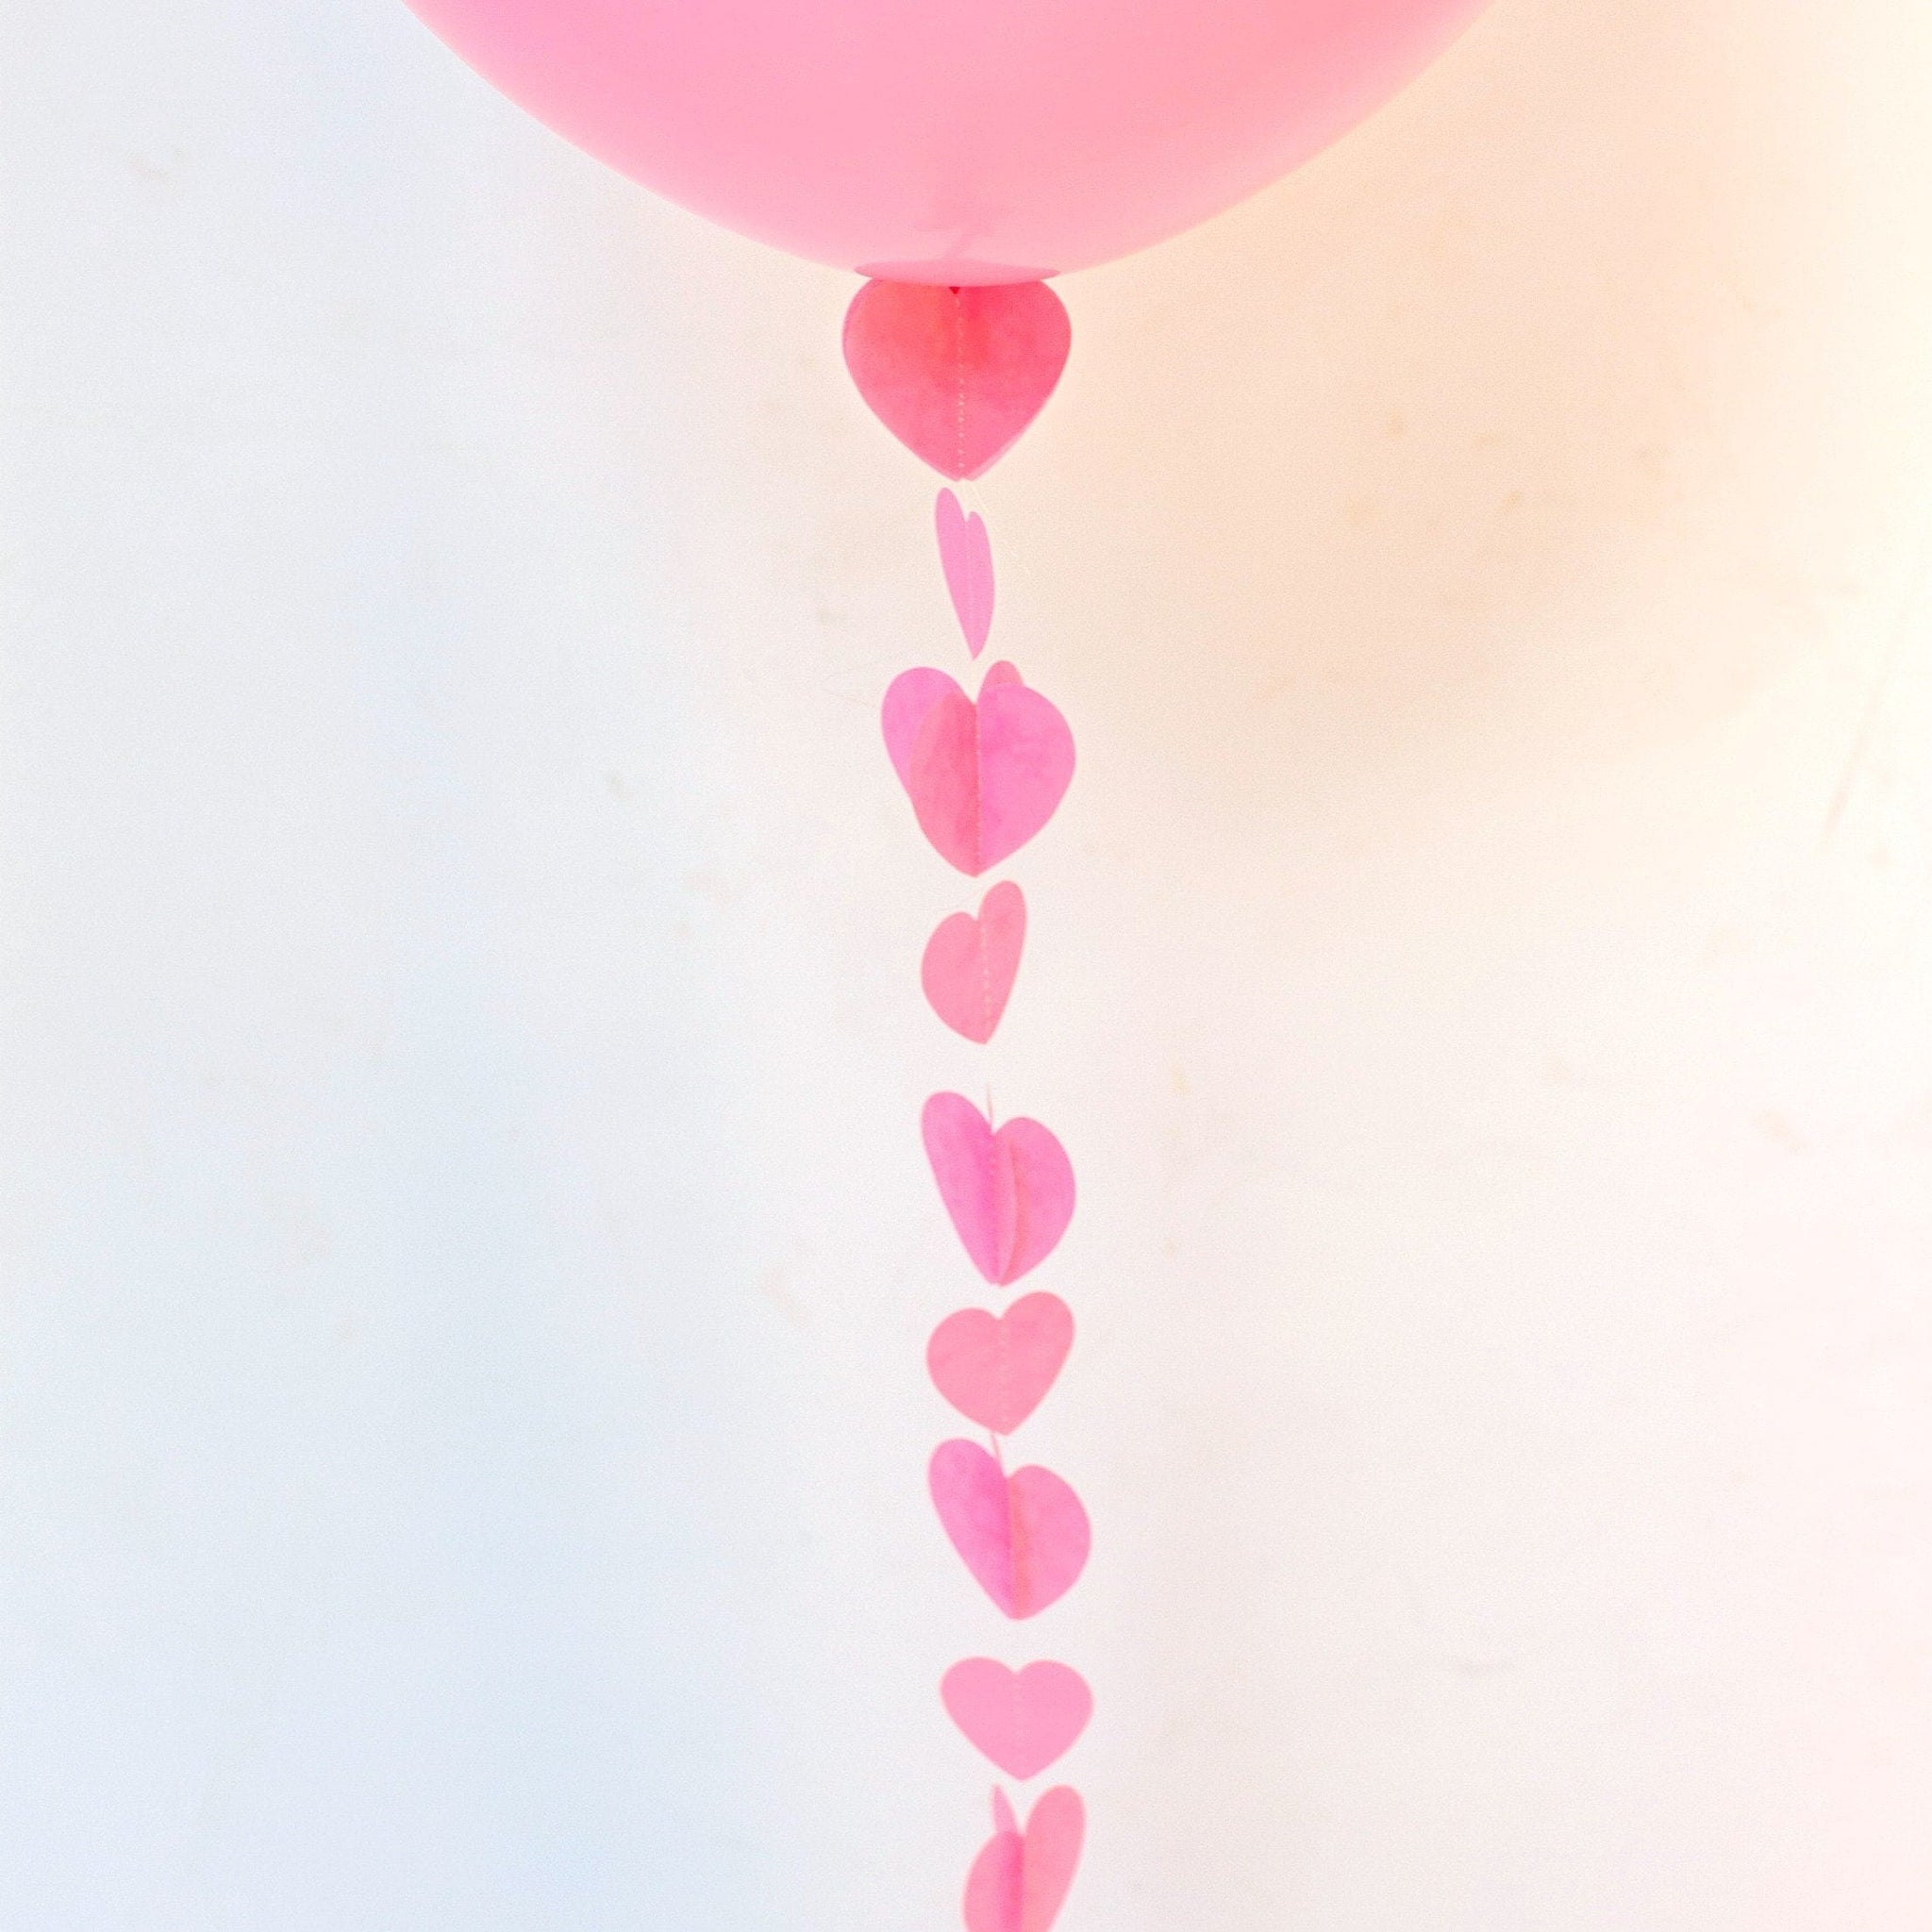 Balloon Tail Pink Hearts | Balloon Tail Decorations UK